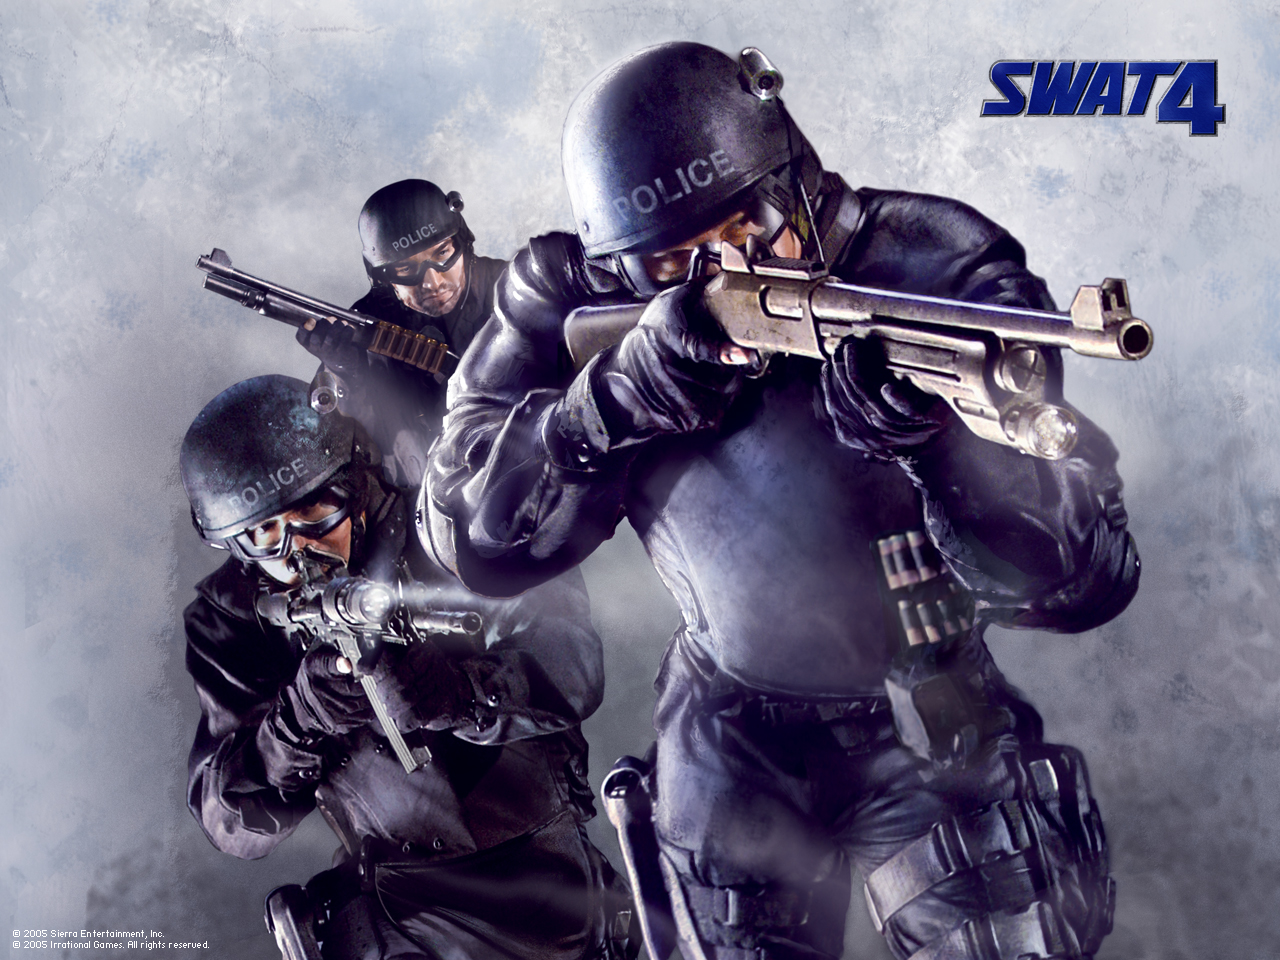 http://www.swat-einsatz-team.de/downloads/wallpapers/swat4/swat_wallpaper_3_1280.jpg